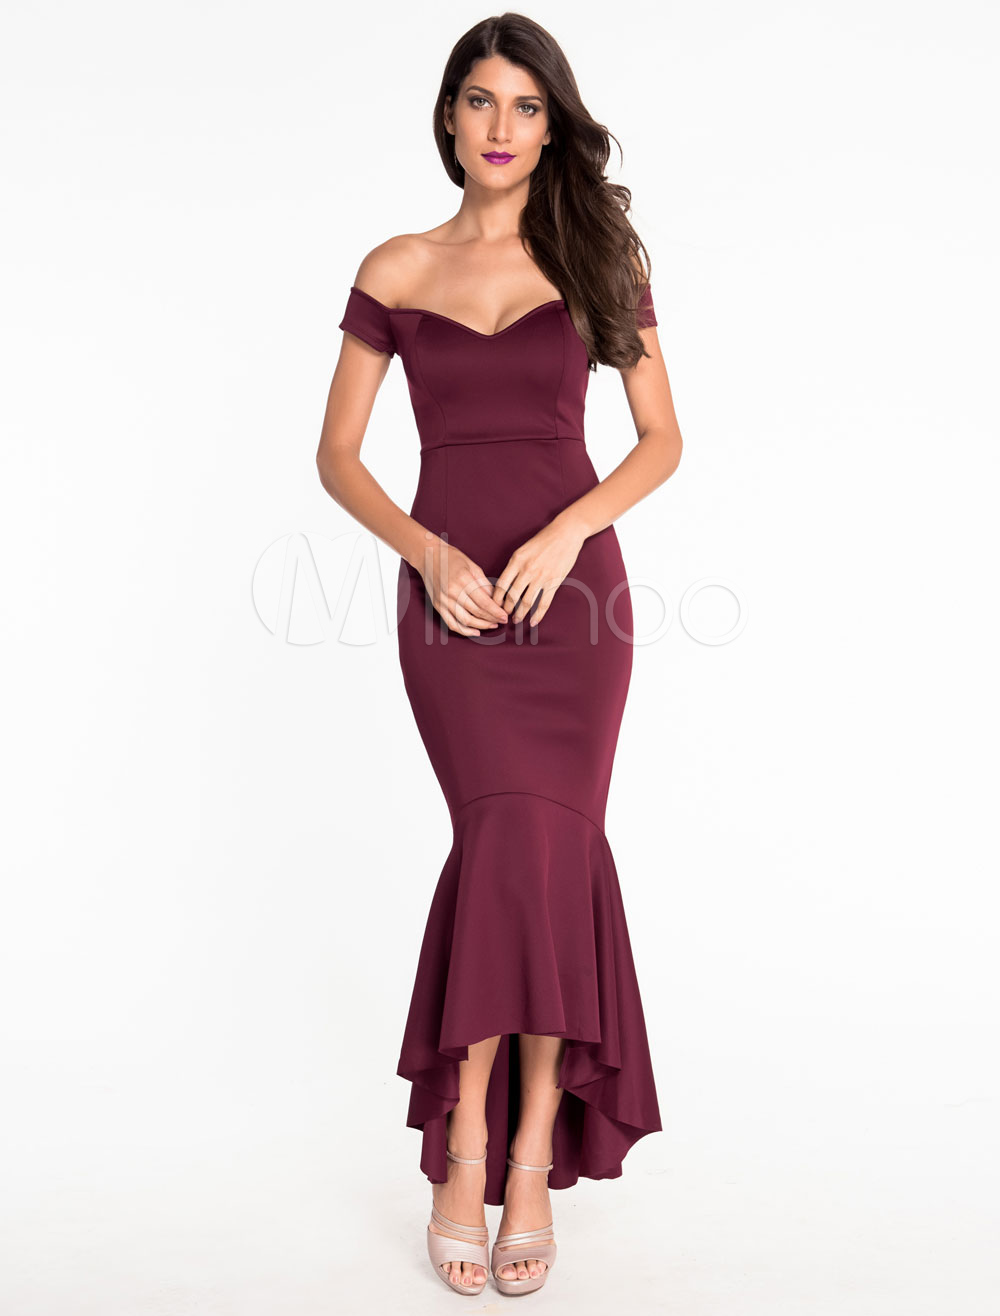 Buy Women Bodycon Dress Off The Shoulder Ruffles Short Sleeve High Low Sexy Mermaid Burgundy Maxi Dresses for $23.74 in Milanoo store